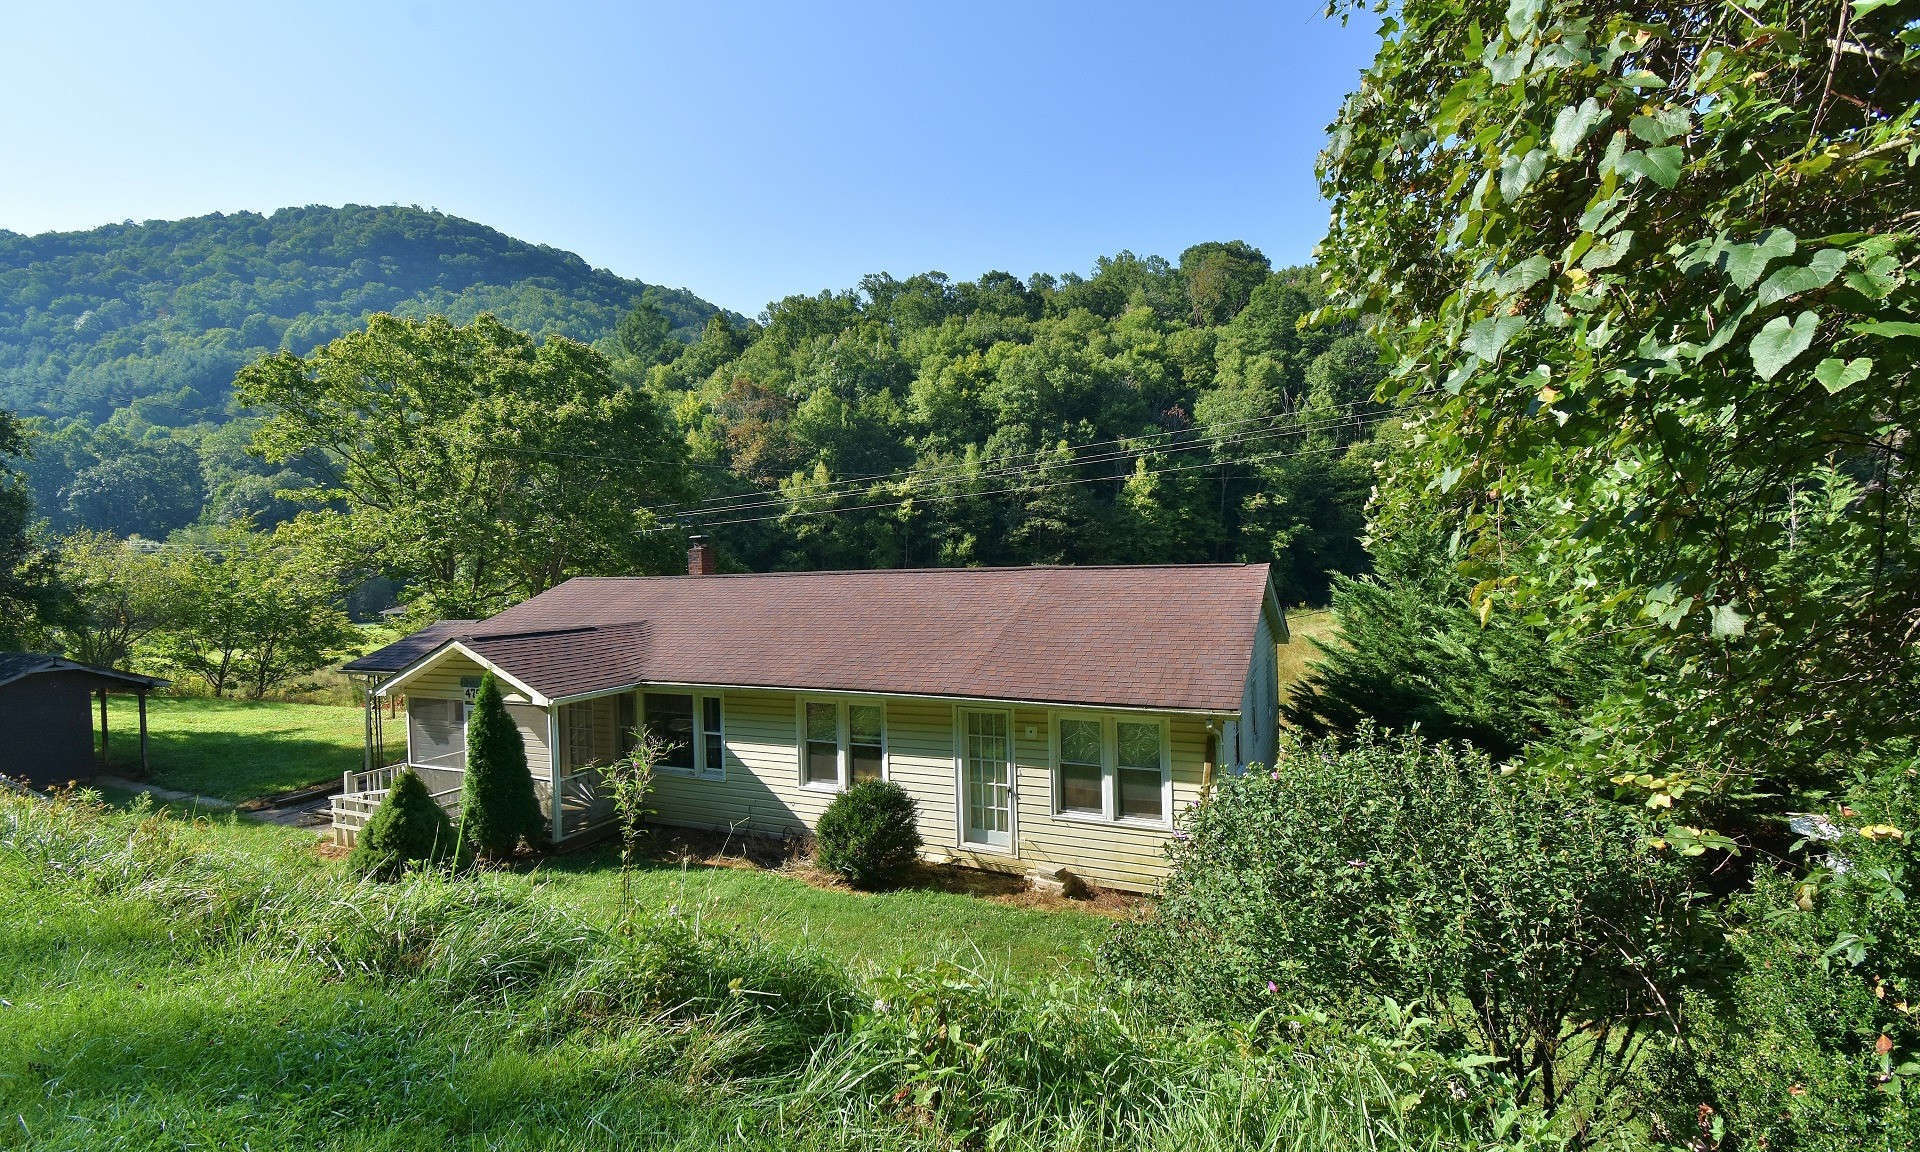 COUNTRY LIVING! Enjoy country living with room to roam on this 70 acre farm in the Lansing area of Ashe County in the NC Mountains.